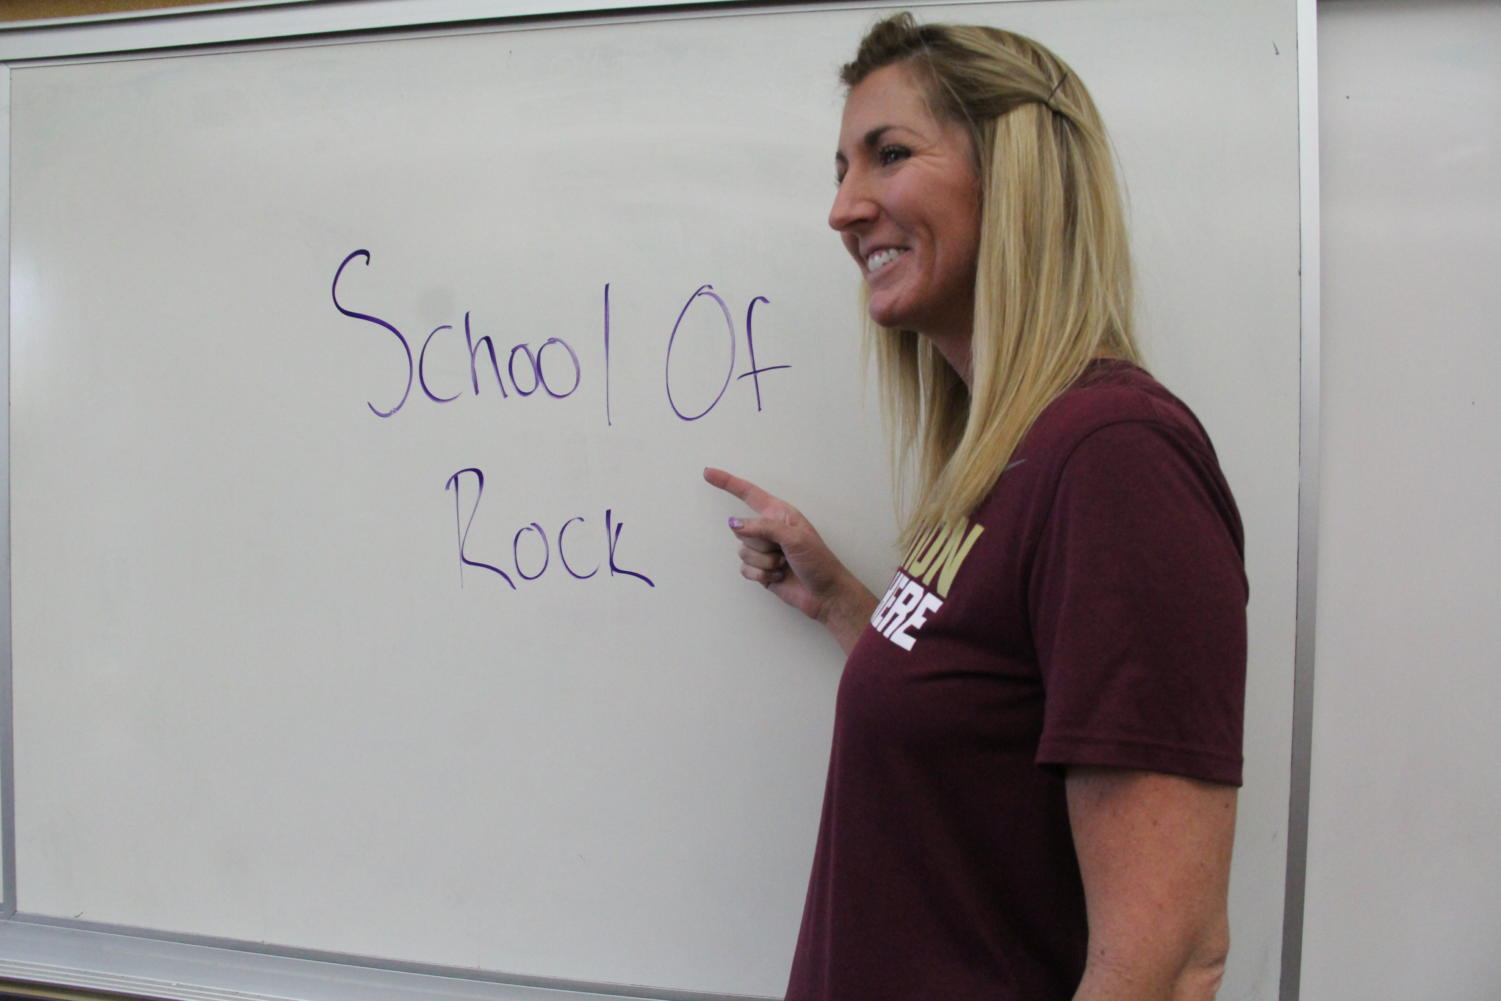 World History and Geography teacher Ms. Suzie Main points to her white board with the words School Of Rock on it. Showing that teachers as well find inspiration from music.